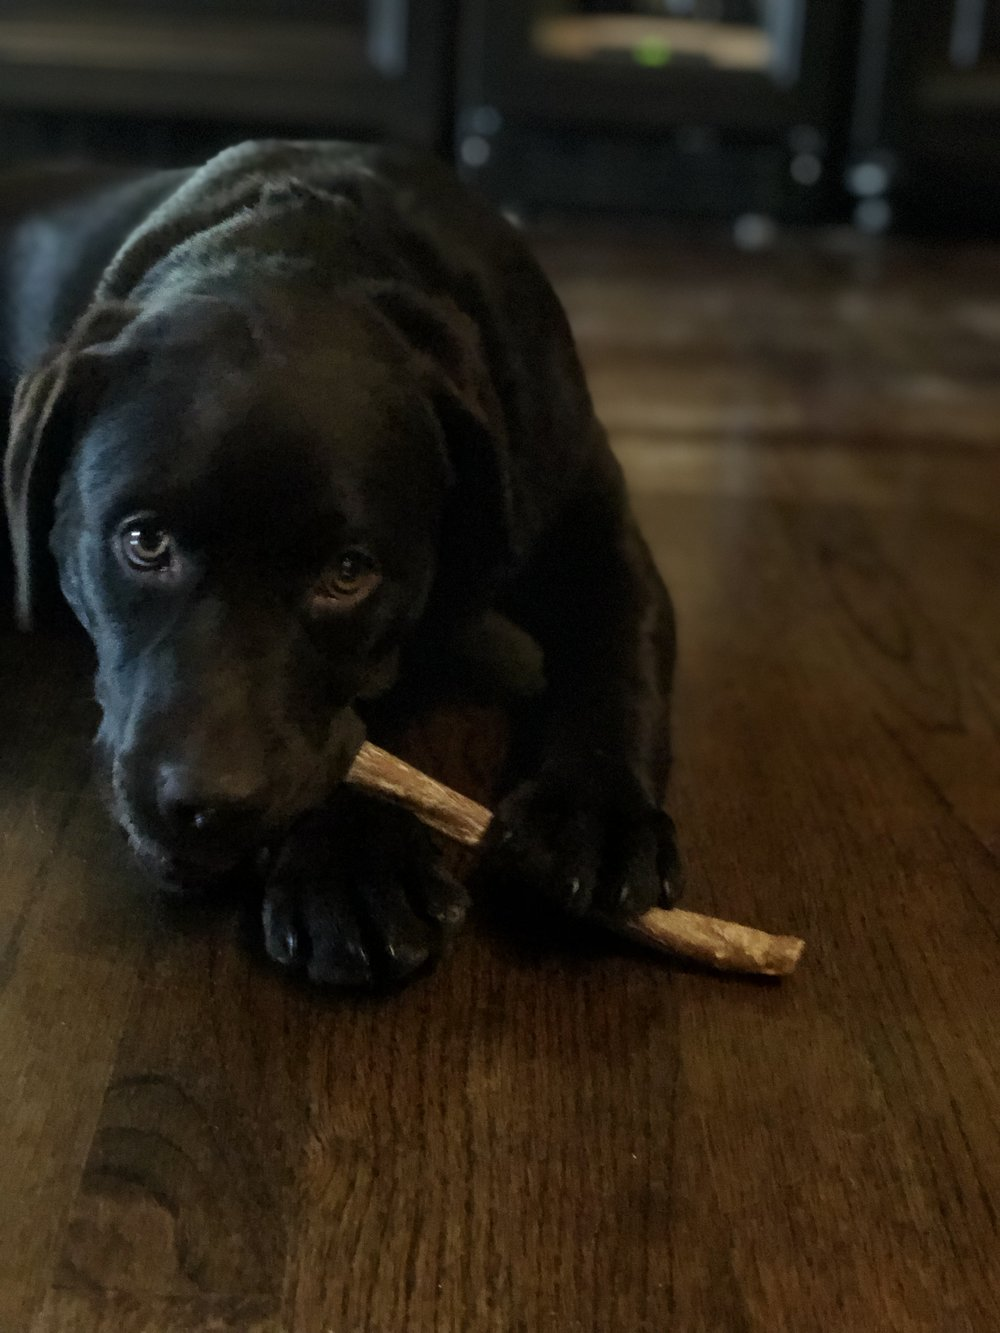 Bully sticks are always a good option for a teething puppy. One of Lucy's favorites! Especially when Mom is busy with her morning routine.